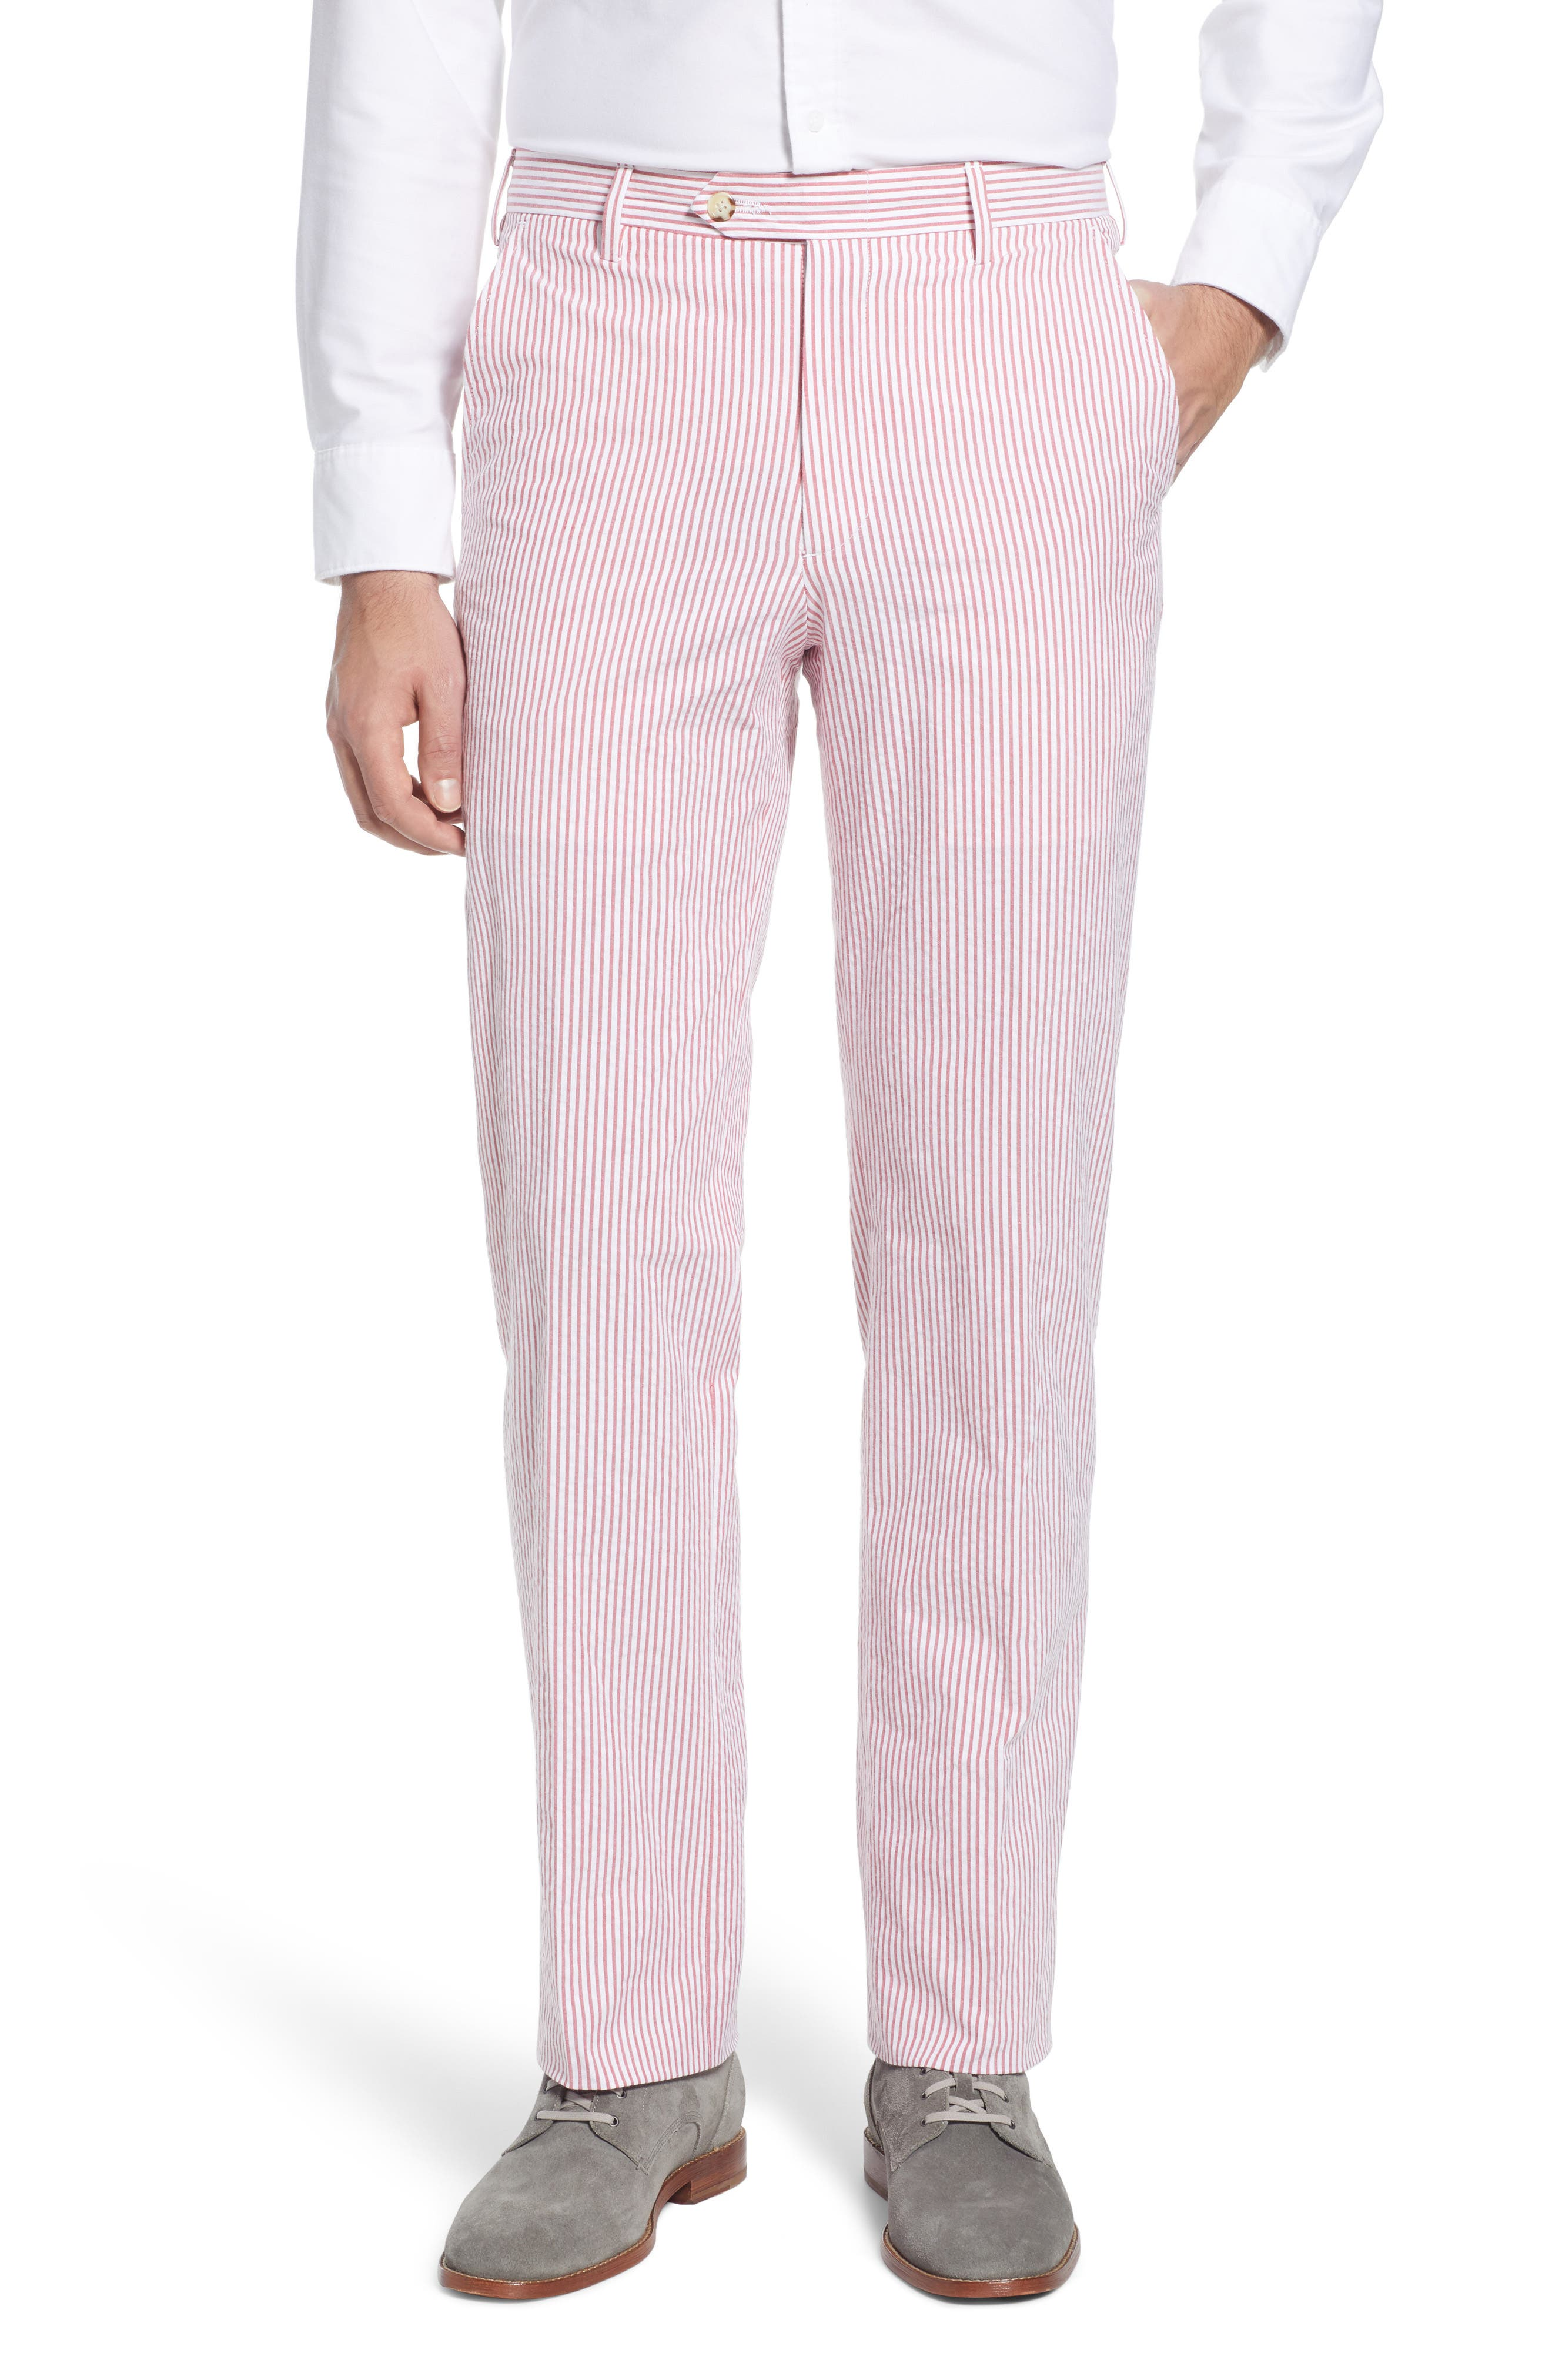 A tailored fit in summer-friendly seersucker puts these classic striped pants in the must-have category. Style Name: Berle Flat Front Seersucker Pants. Style Number: 6033022. Available in stores.